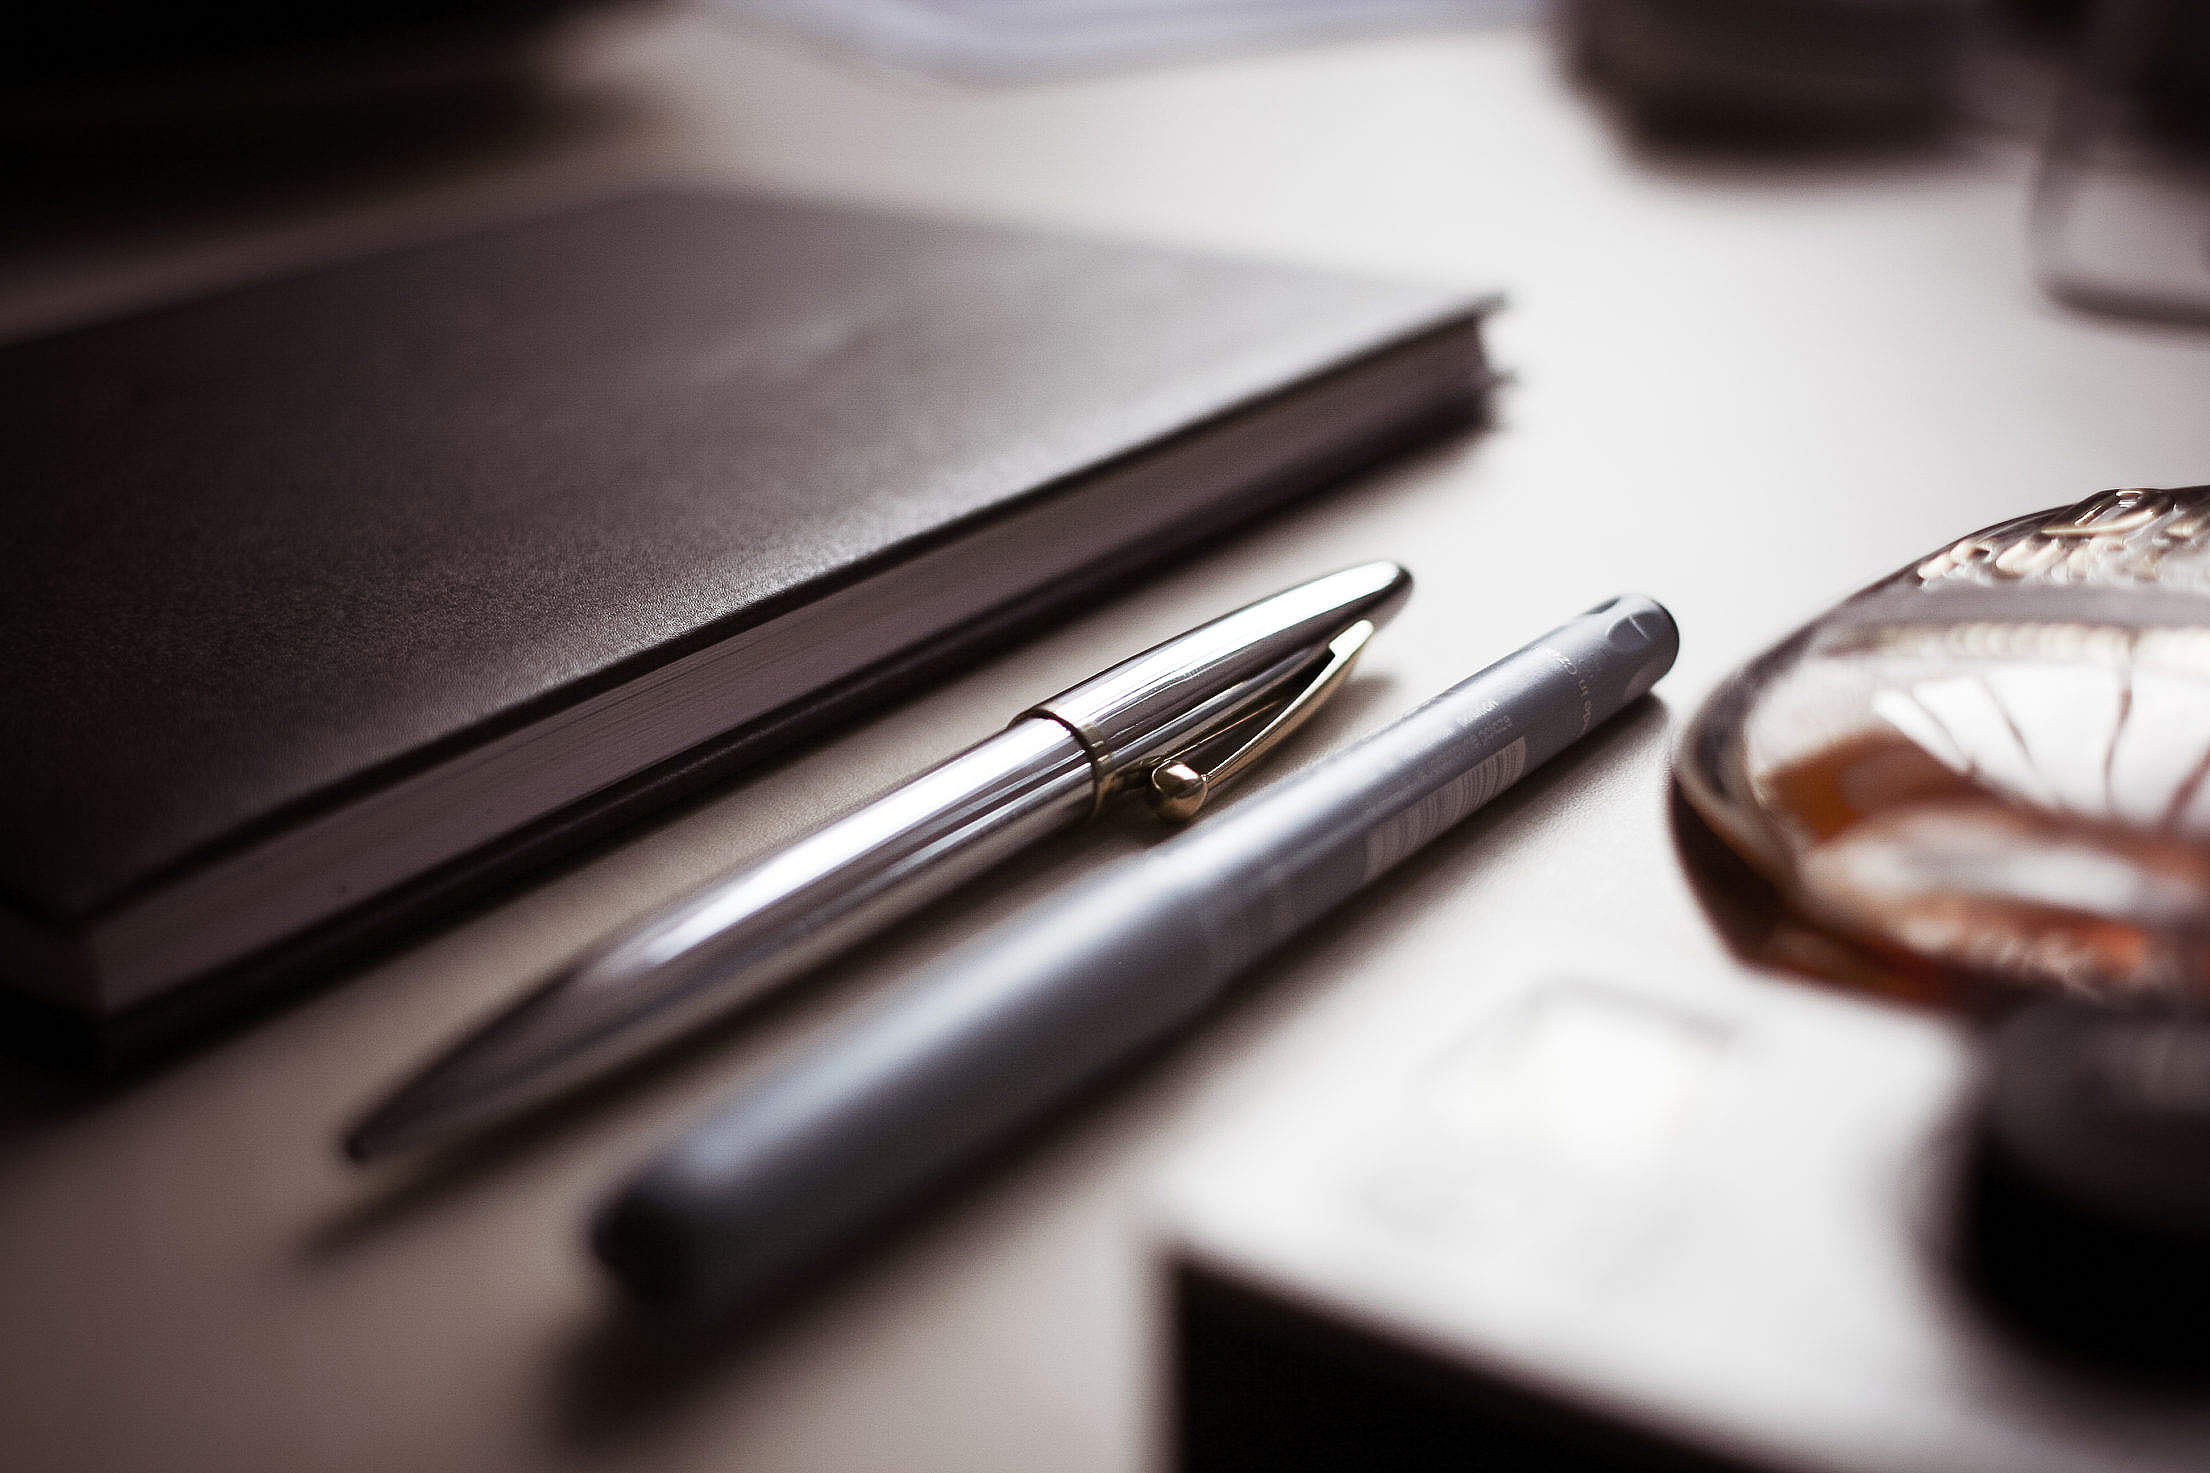 Chrome & Graphic Pens with a Diary Free Stock Photo